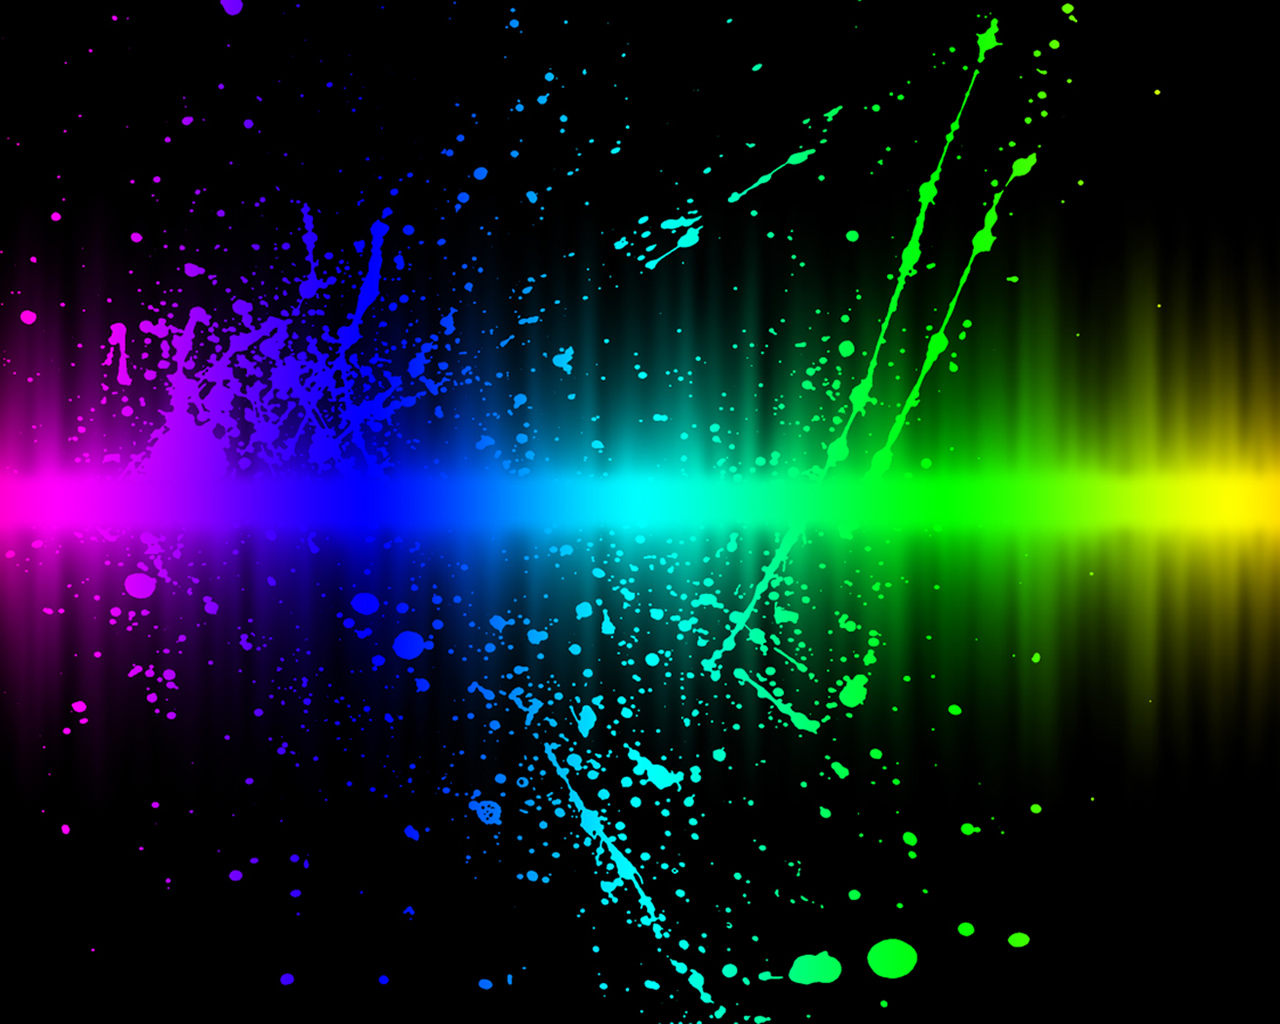 http://4.bp.blogspot.com/-SEoaQgkQGSY/T0cL0xl0zfI/AAAAAAAADEc/a5NWMZ_NkXA/s1600/Abstract-wallpaper-14.jpg